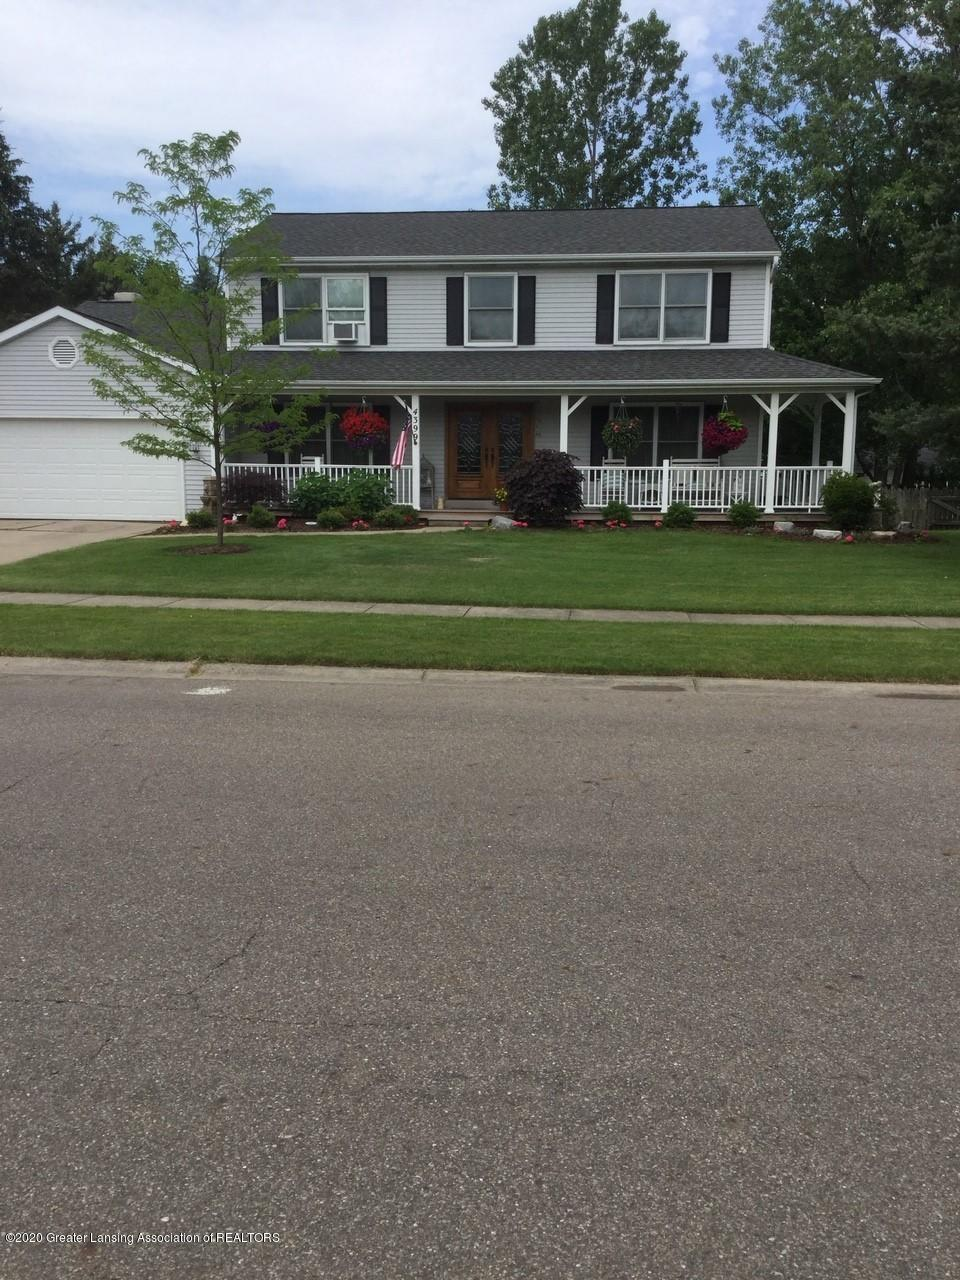 4399 Hickorywood Dr - 1 - 1